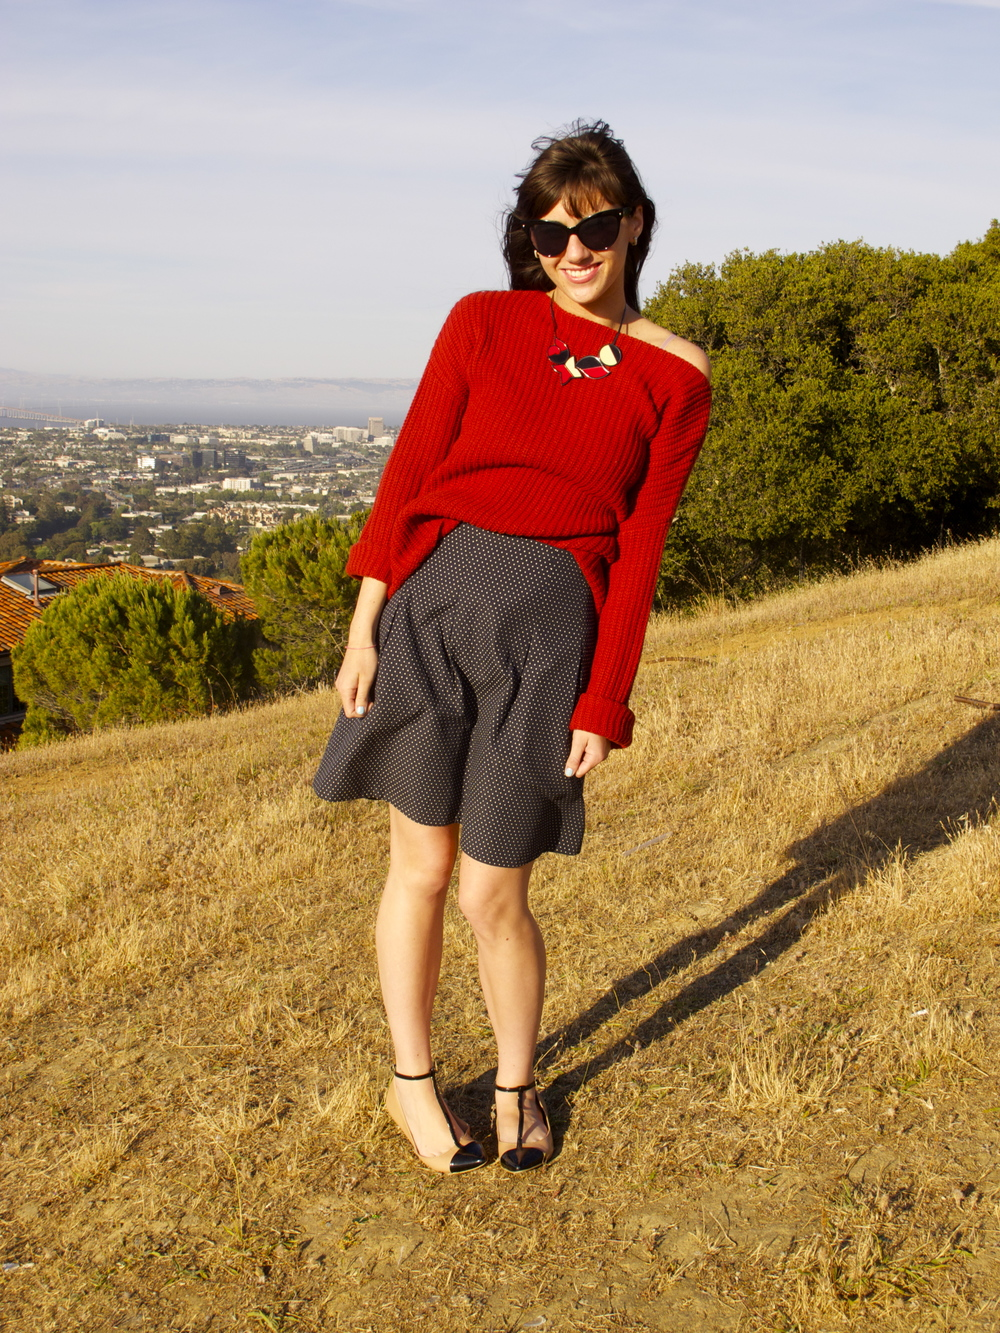 Sweater: Vince, Loft; Polka Dot Skirt: Jigsaw London; Shoes; Sole Society, Nordstroms; Necklace; Vintgae